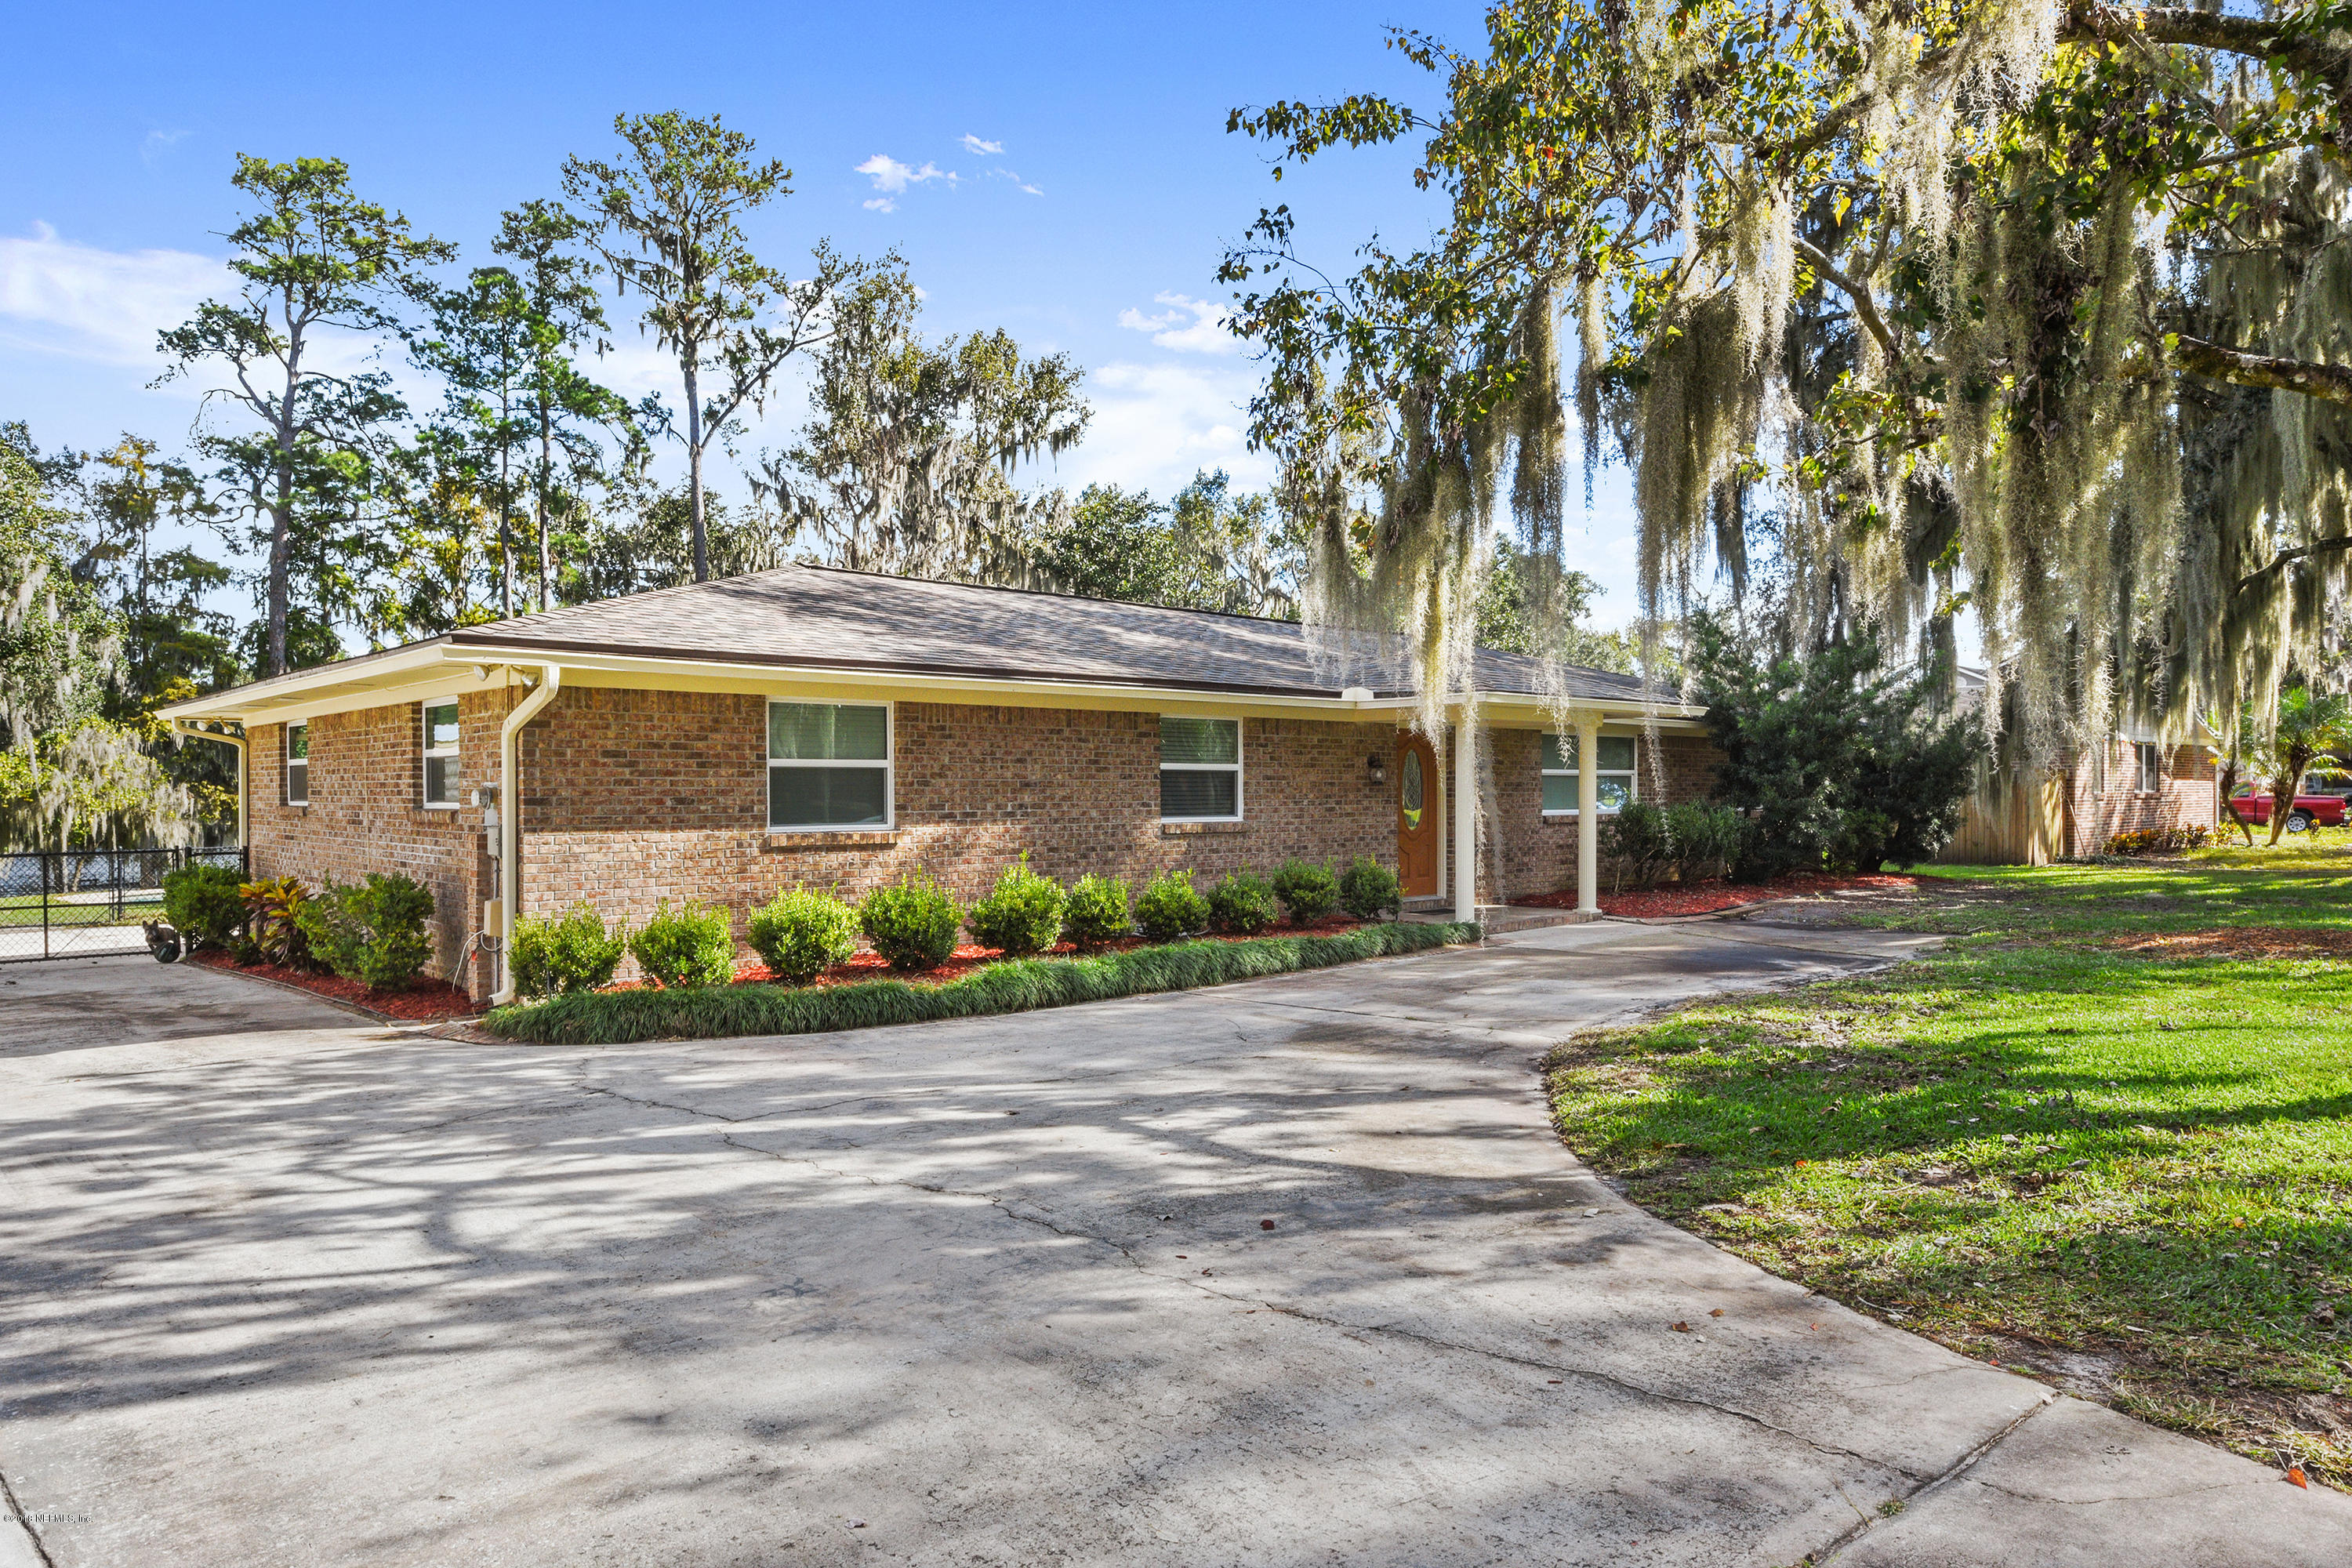 20 HARMONY HALL, MIDDLEBURG, FLORIDA 32068, 3 Bedrooms Bedrooms, ,2 BathroomsBathrooms,Residential - single family,For sale,HARMONY HALL,969678